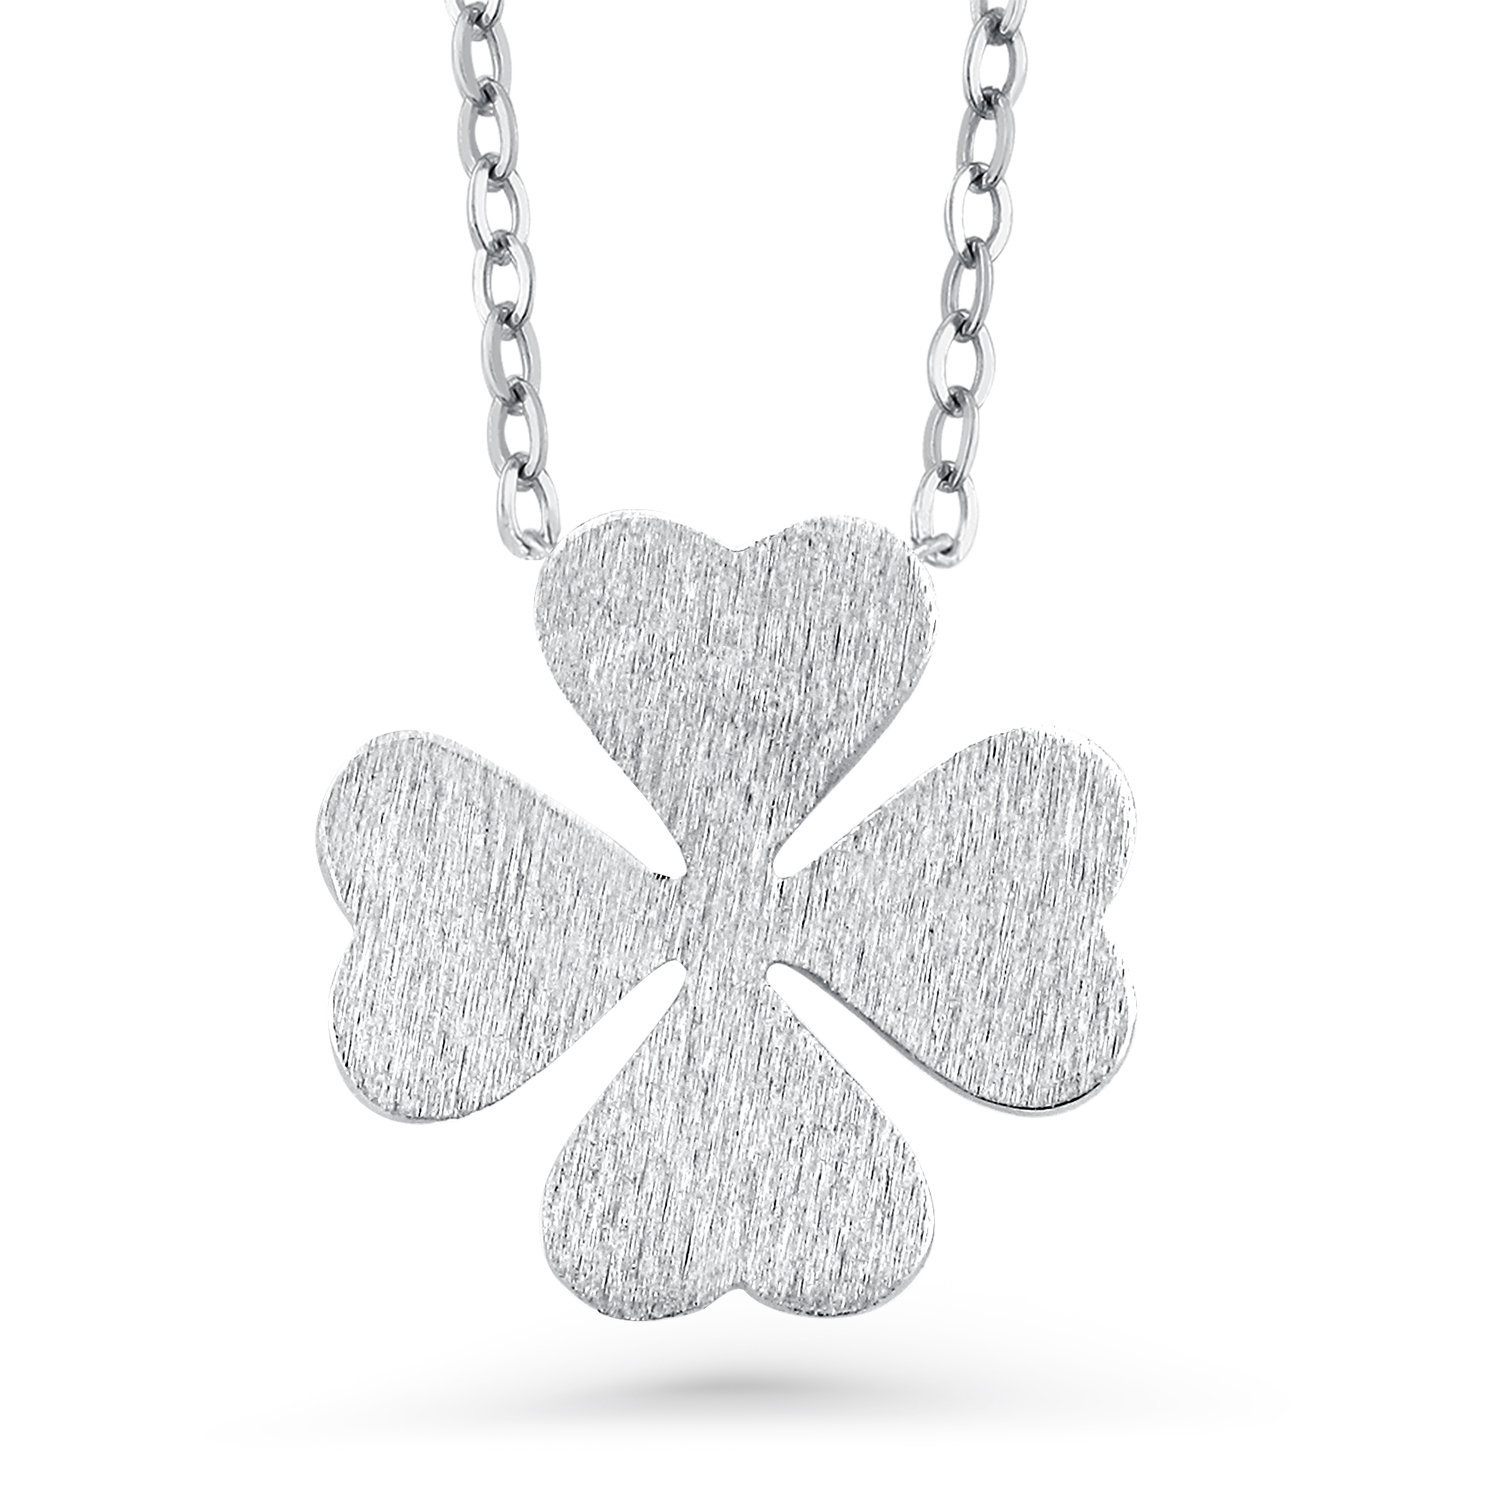 Clover Pendant Necklace, 925 Sterling Silver Lucky Four Leaf Clover  Necklace, Clover Jewelry, Lucky Leaf Jewelry, Clover Lucky Charm With Most Up To Date Lucky Four Leaf Clover Dangle Charm Necklaces (View 8 of 25)